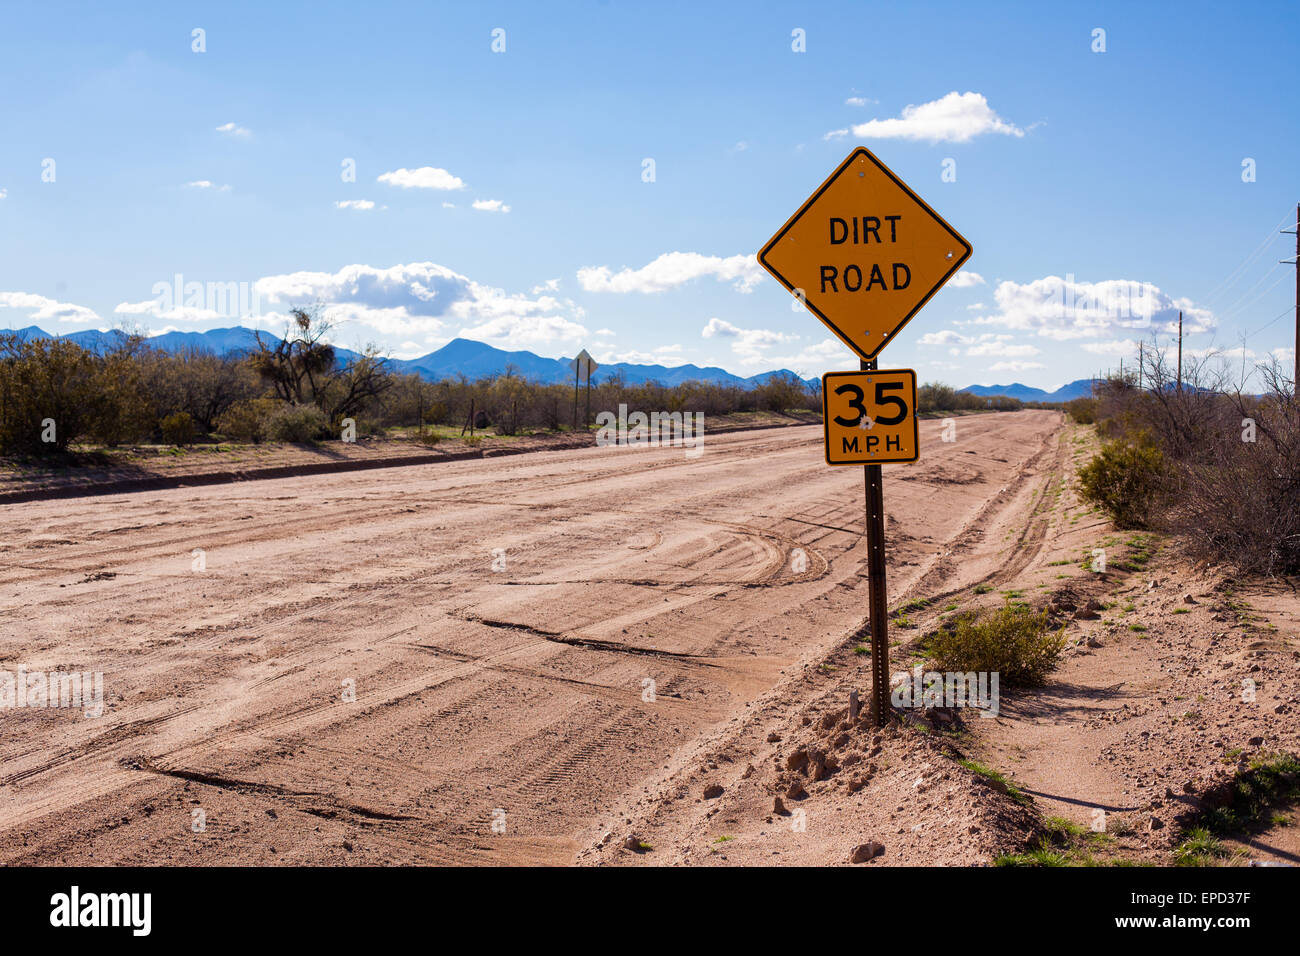 Dirt Road with sign - Stock Image